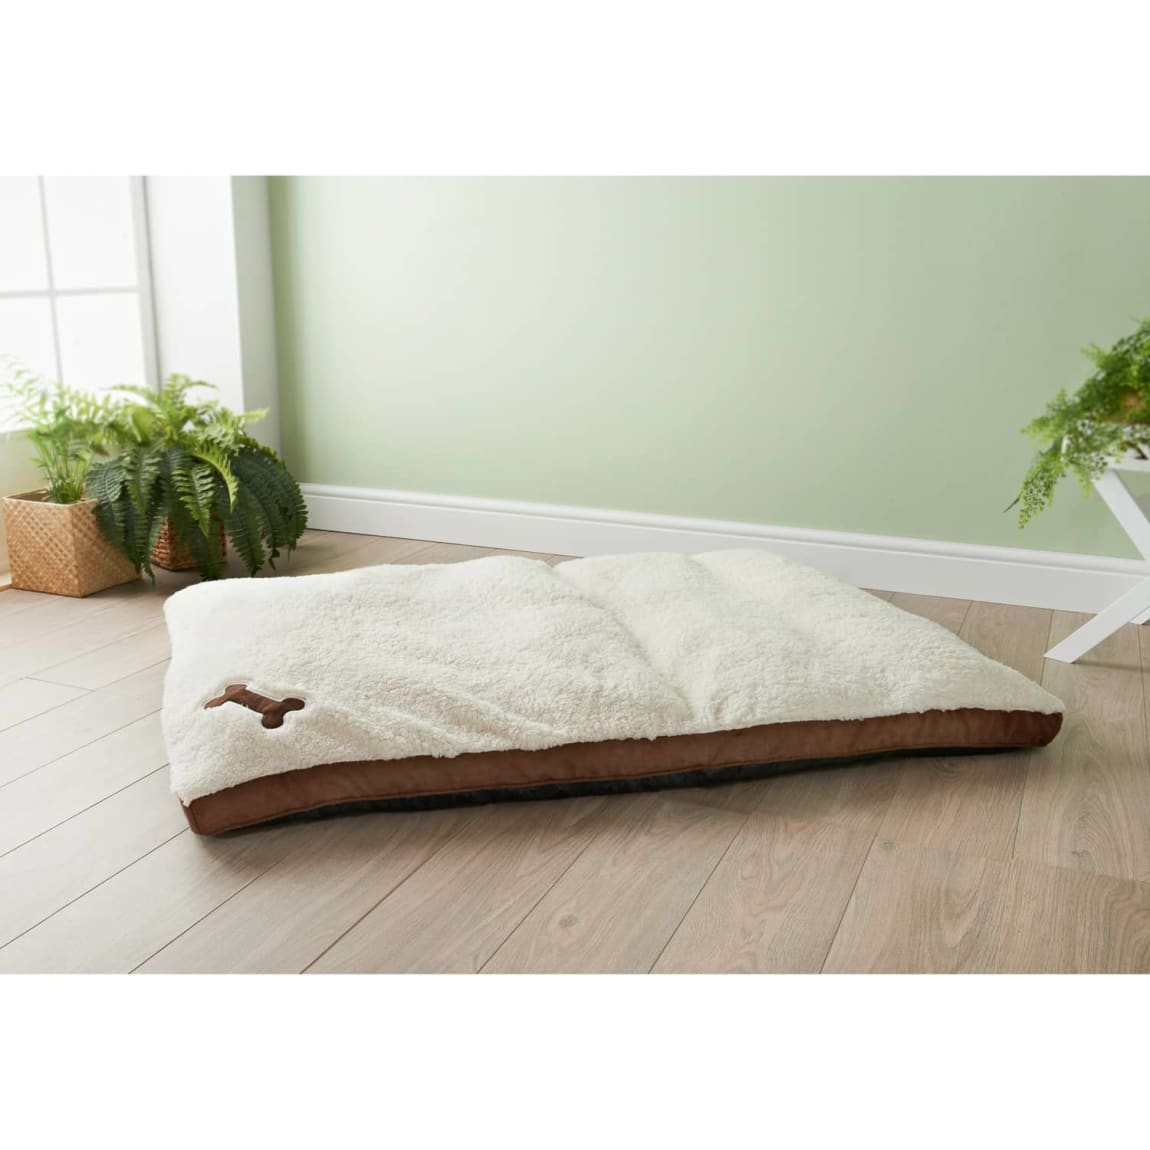 Extra Large Memory Foam Dog Bed - Brown